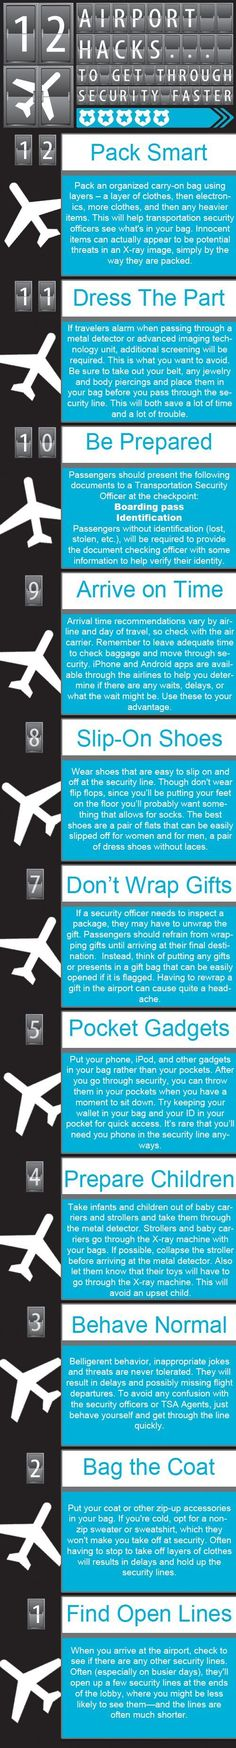 Checklist: Hand Luggage – What Is Allowed in and What Not?